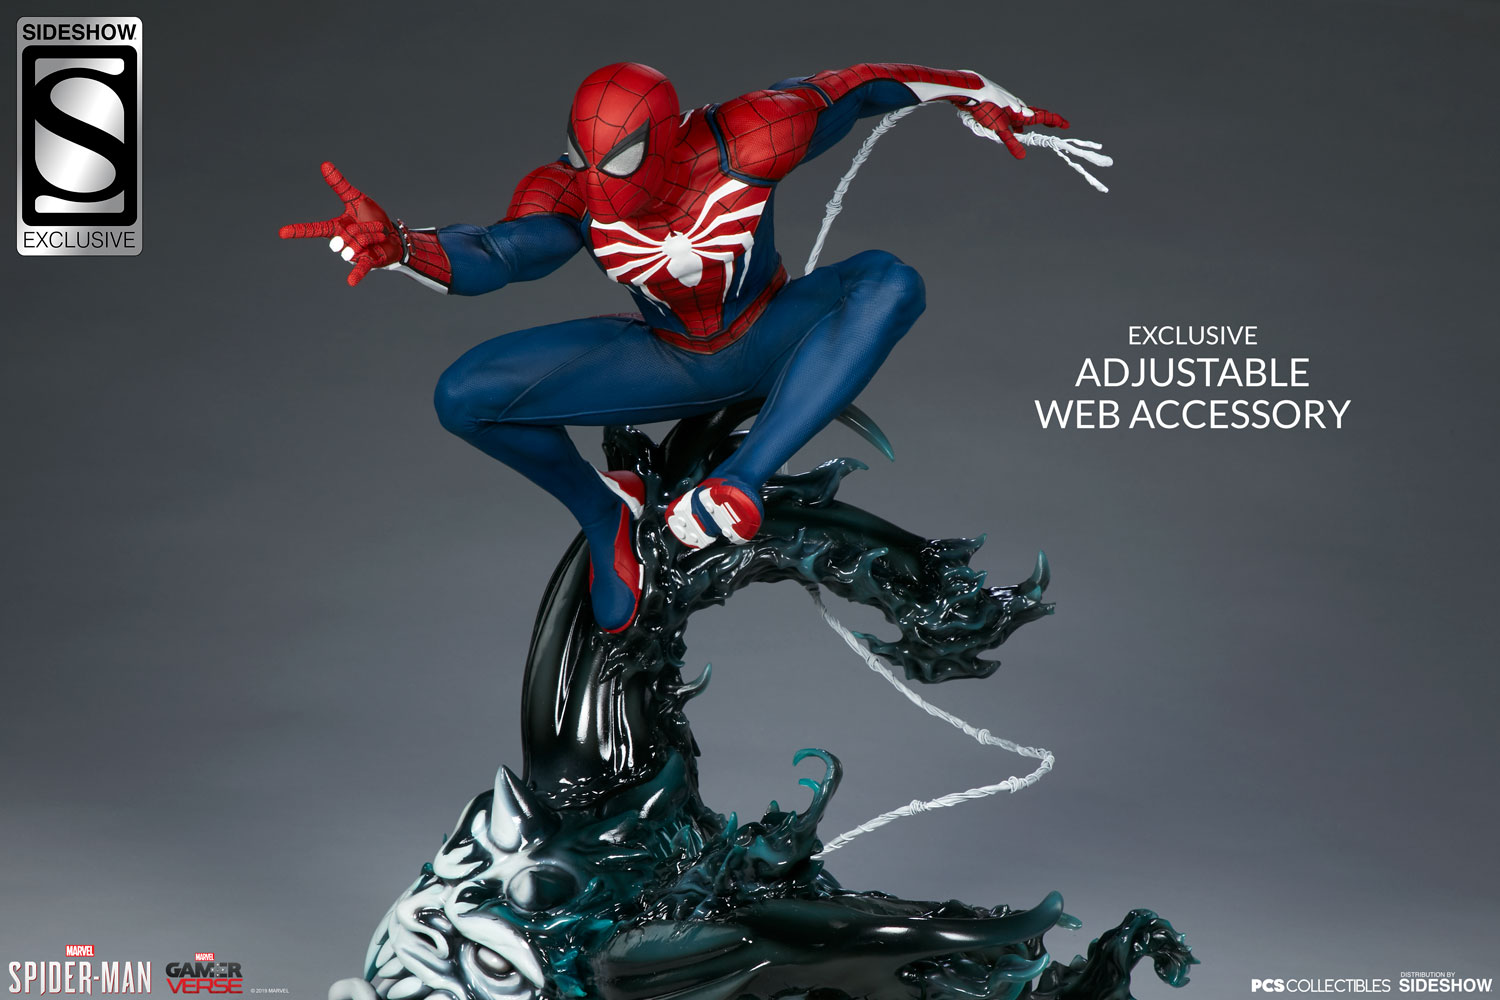 Action Figure Spider-Man Kece dari Sideshow dan PCS Collectibles